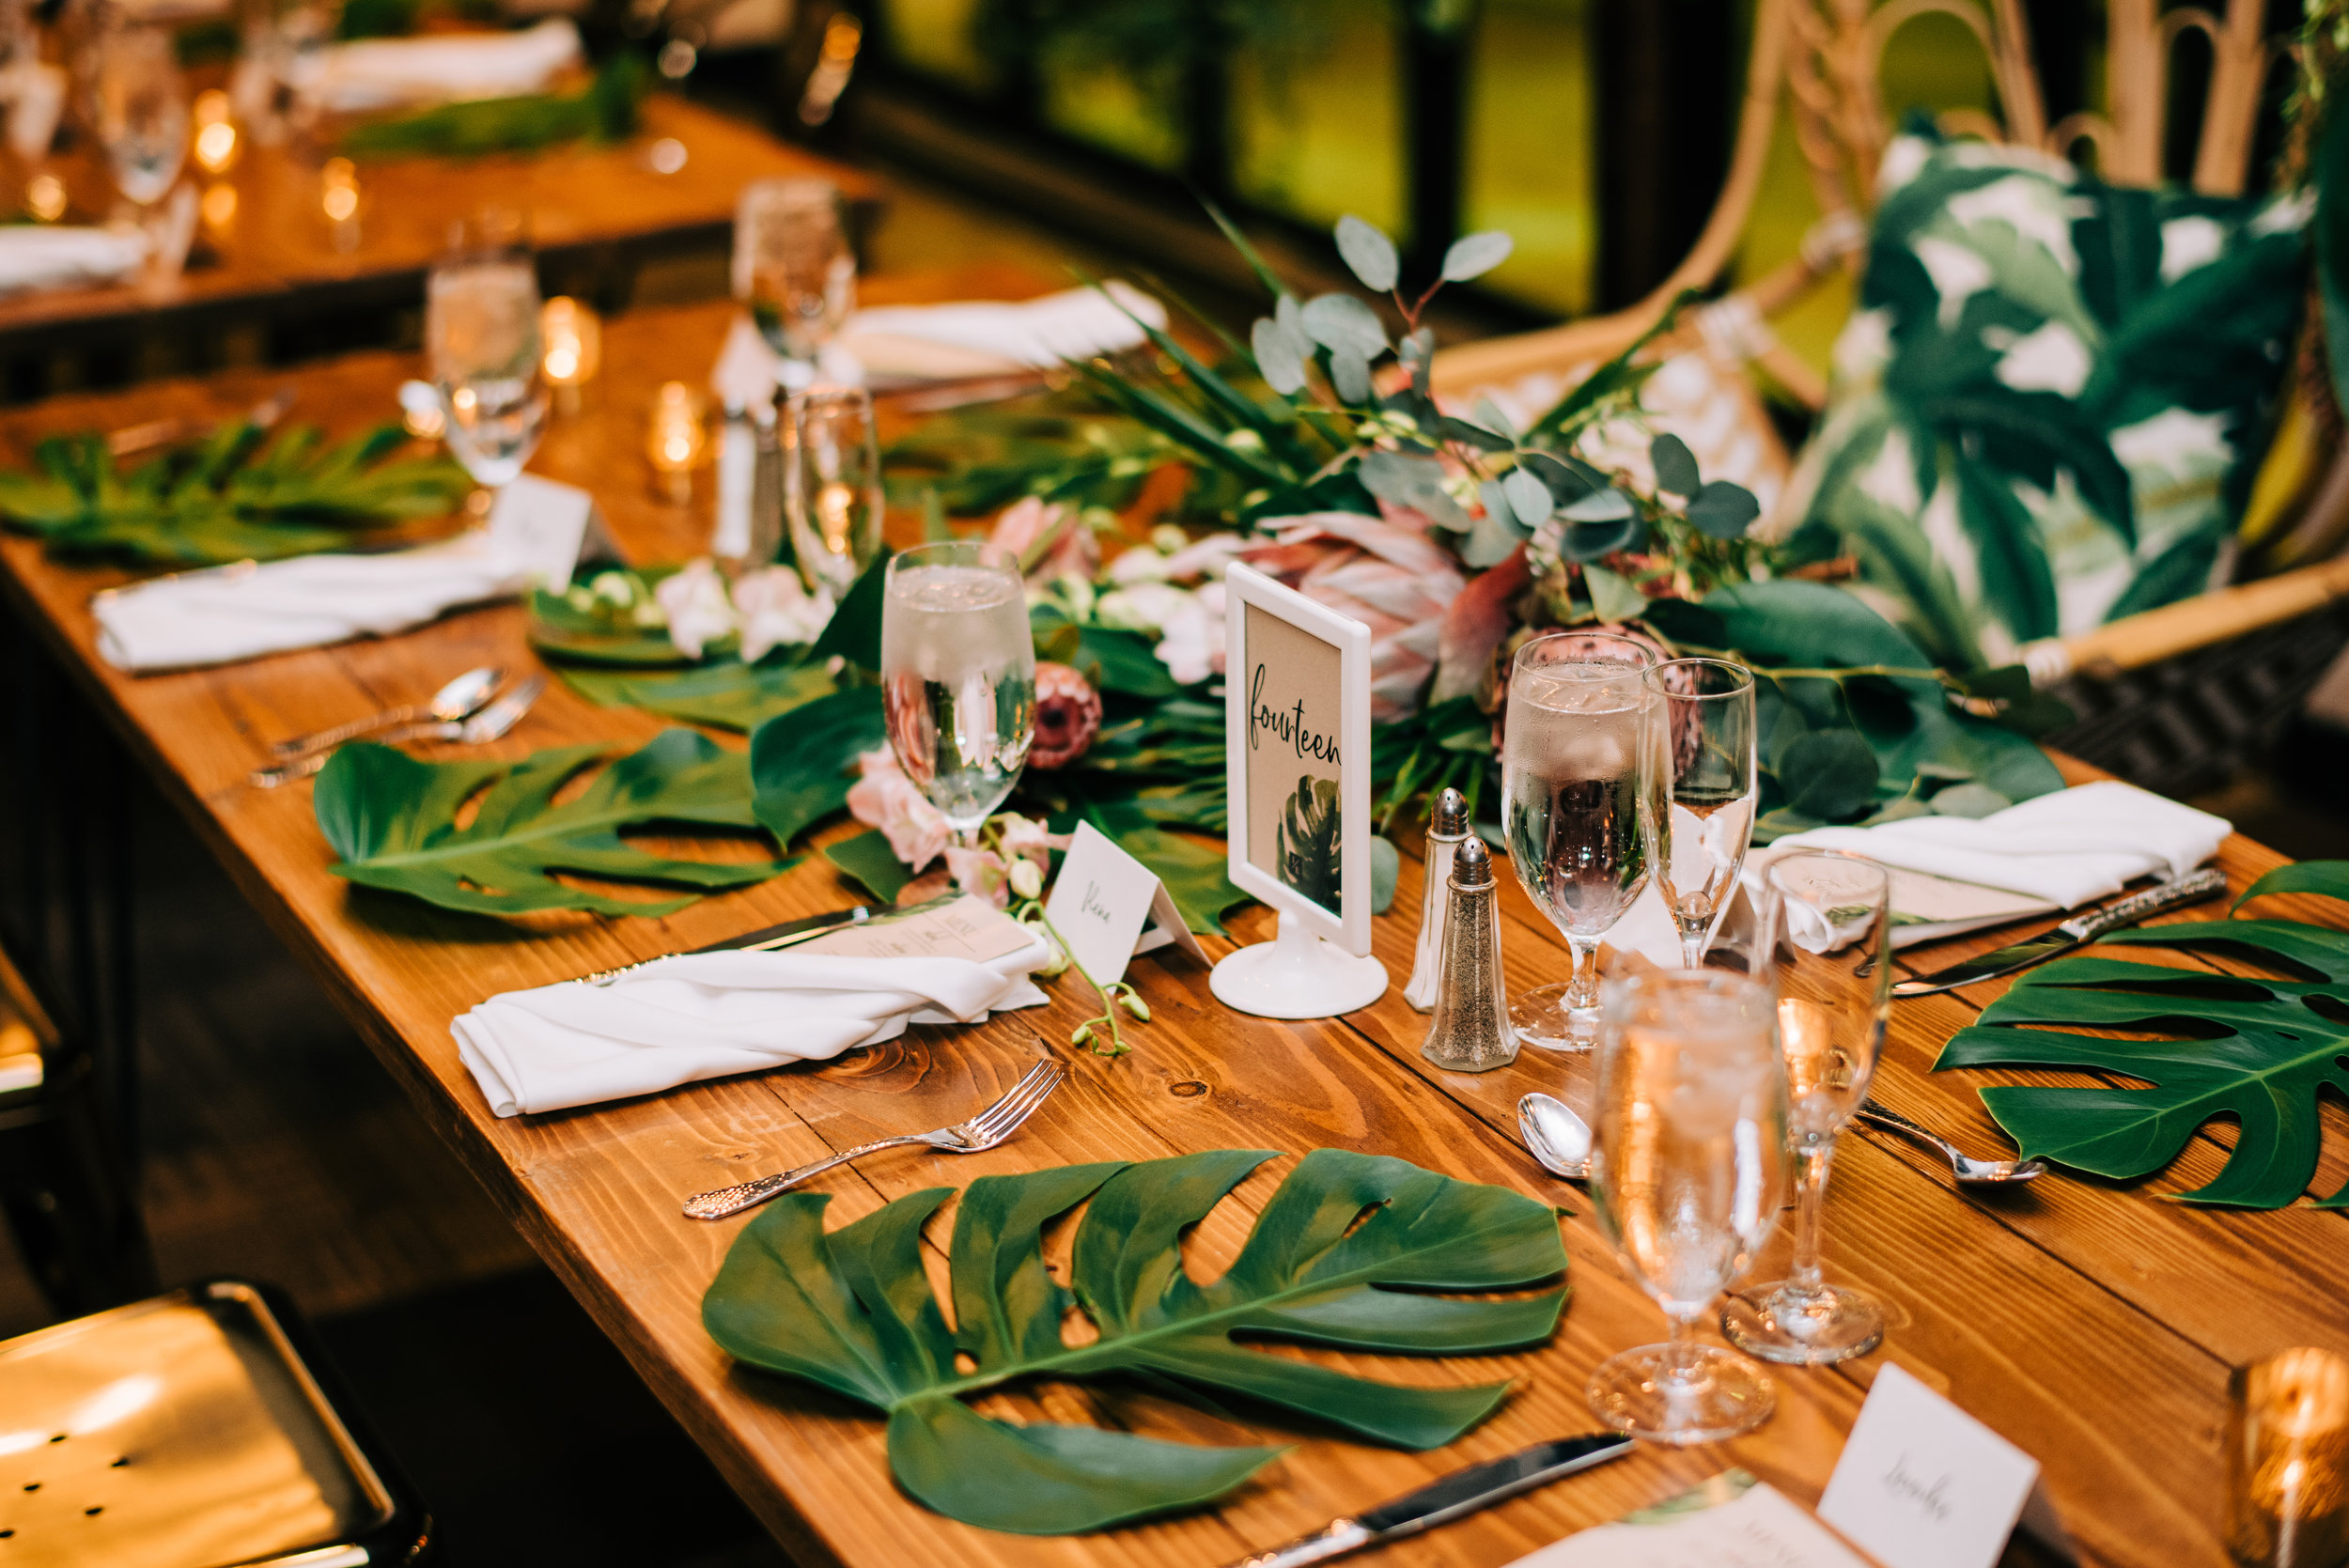 28 tropical leaf placemat tropical theme wedding reception place setting head table seating wedding reception Life Design Events photos by Josh Snyder Photography.jpg